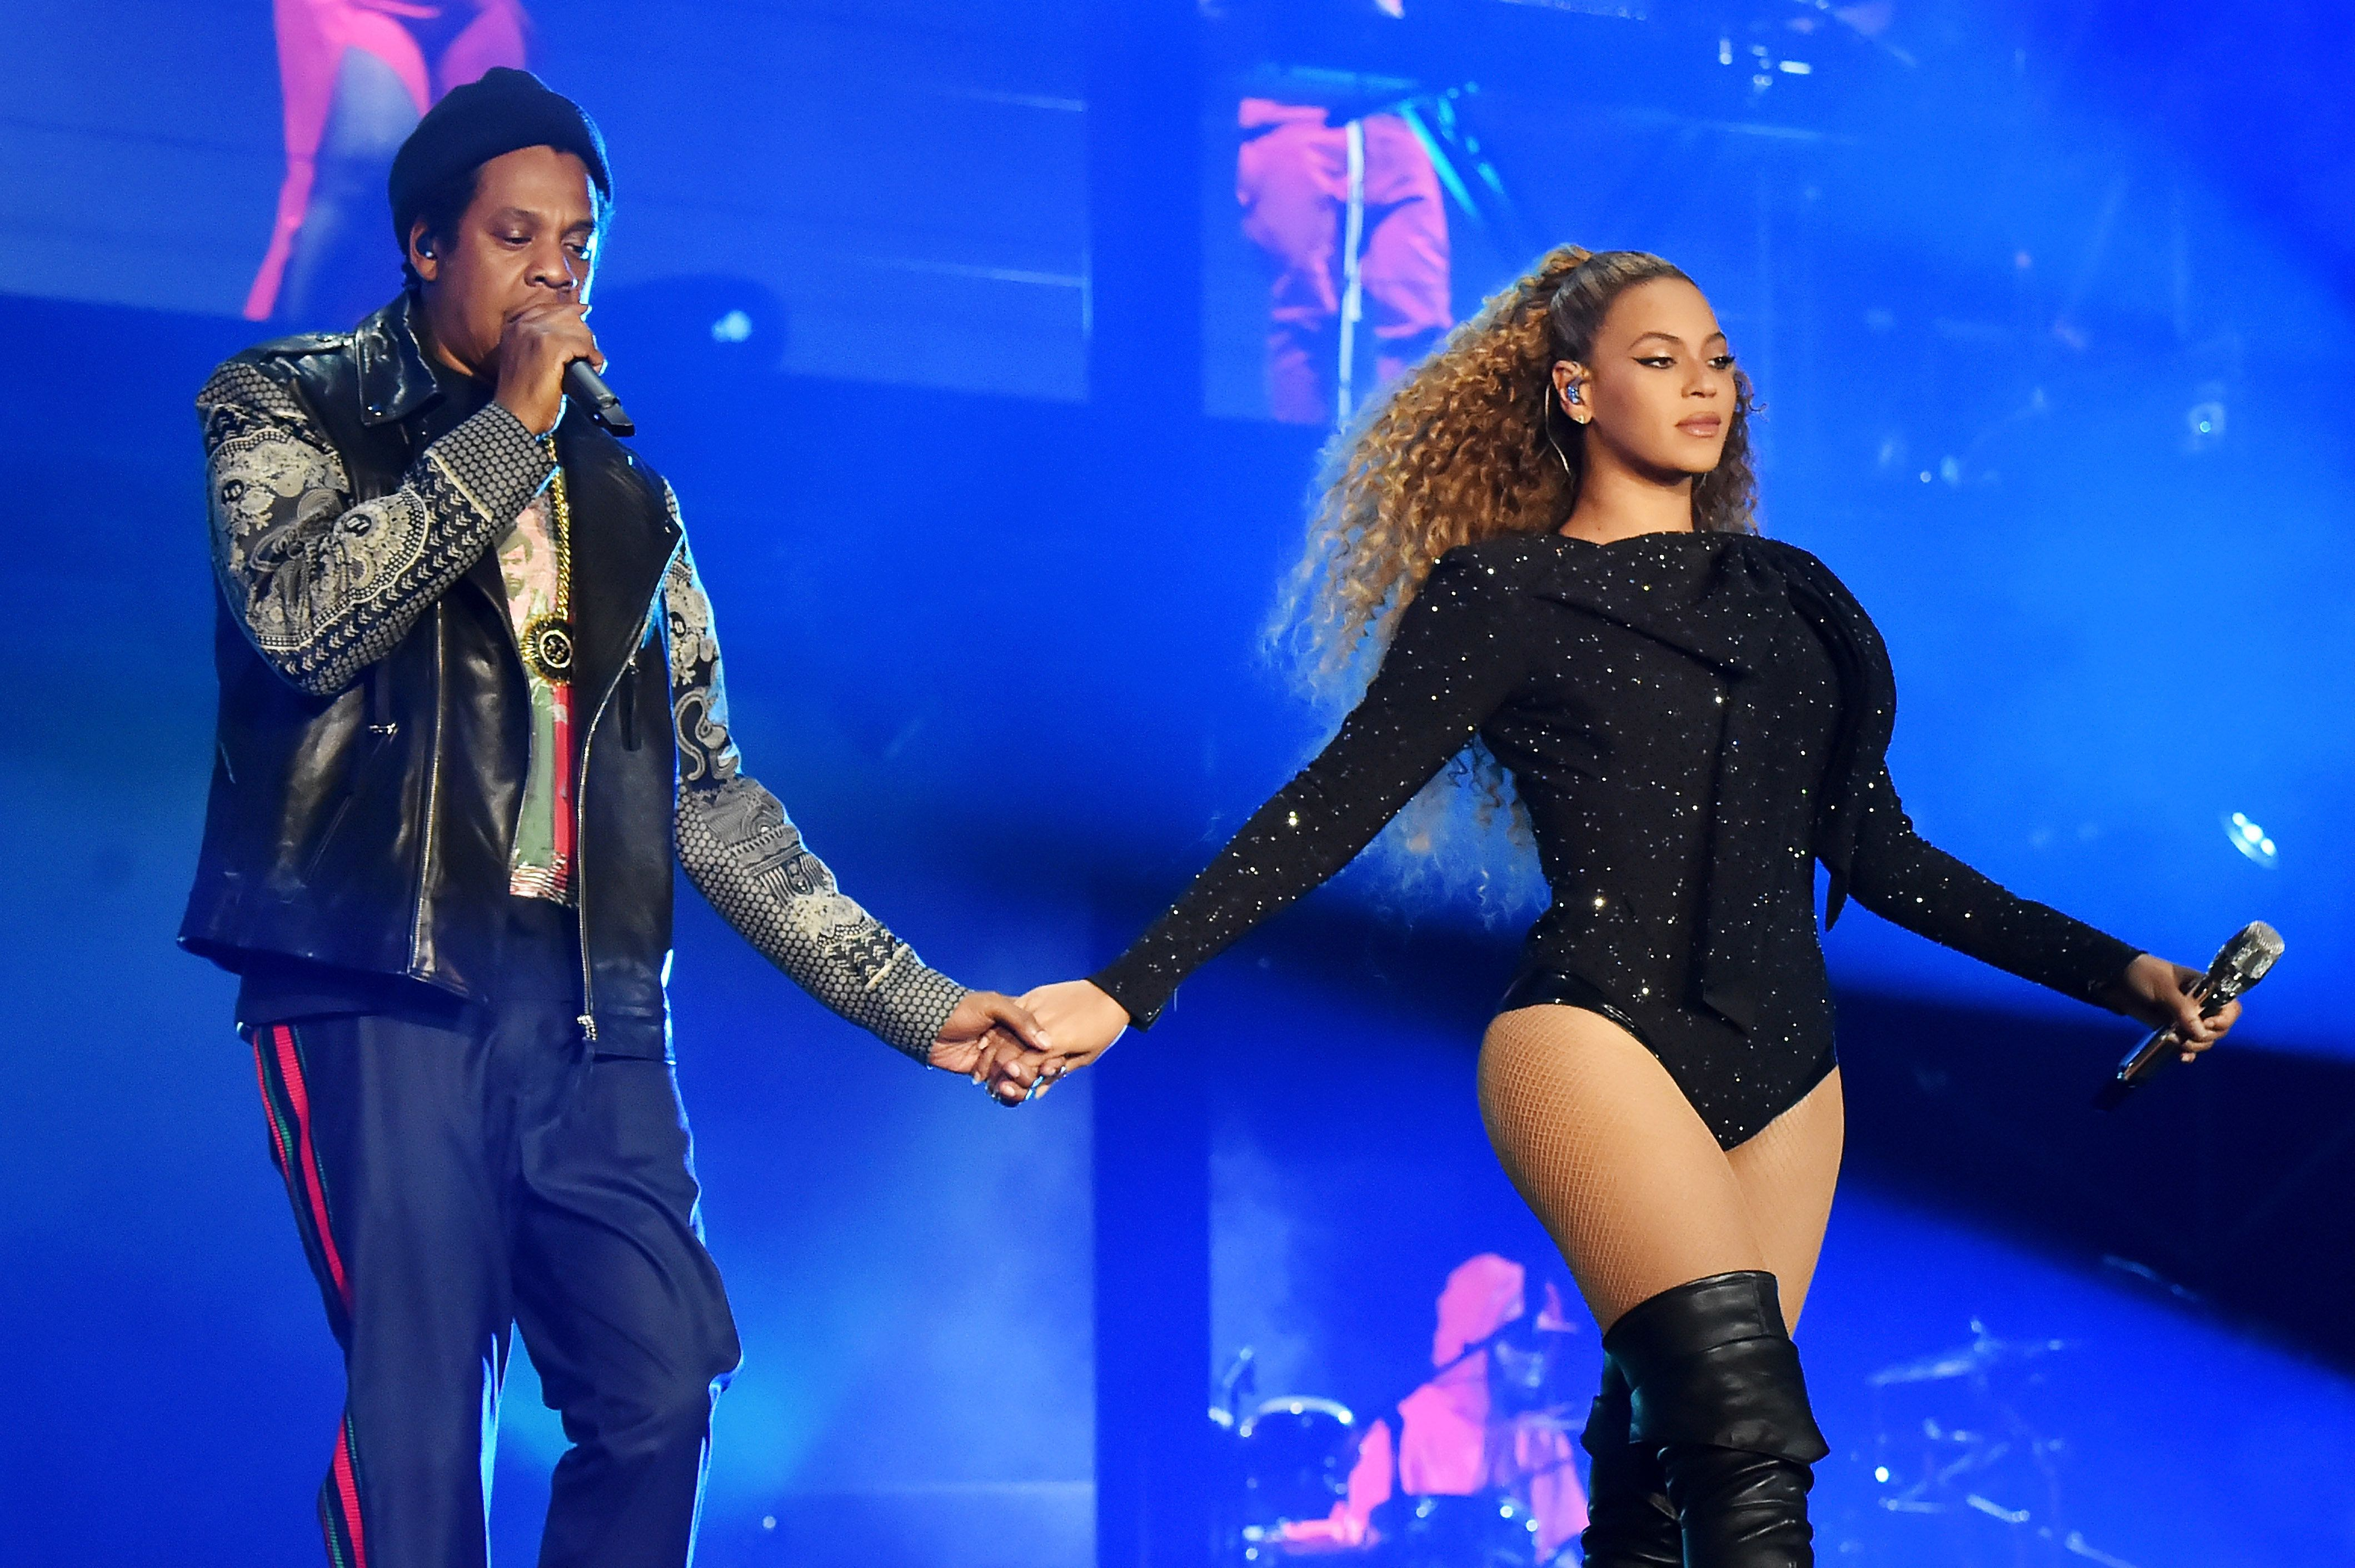 Beyoncé And Jay-Z's On The Run II Tour Looks Completely